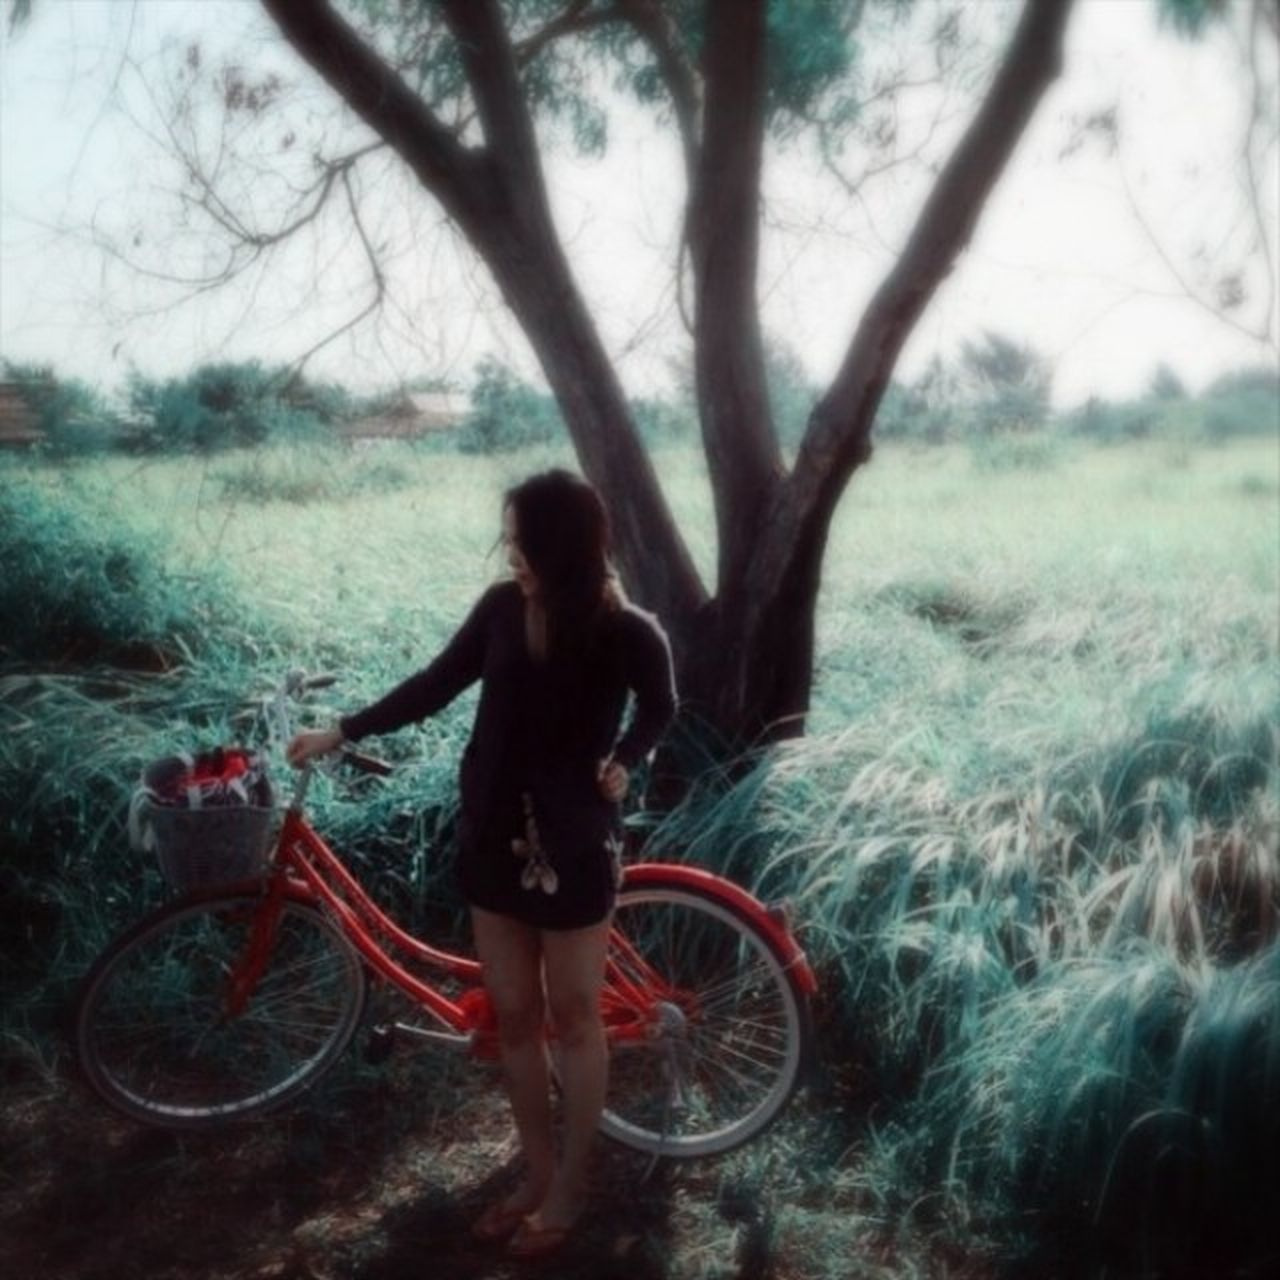 bicycle, one person, tree, real people, outdoors, cycling, day, transportation, full length, standing, bare tree, nature, grass, lifestyles, young adult, sky, people, adult